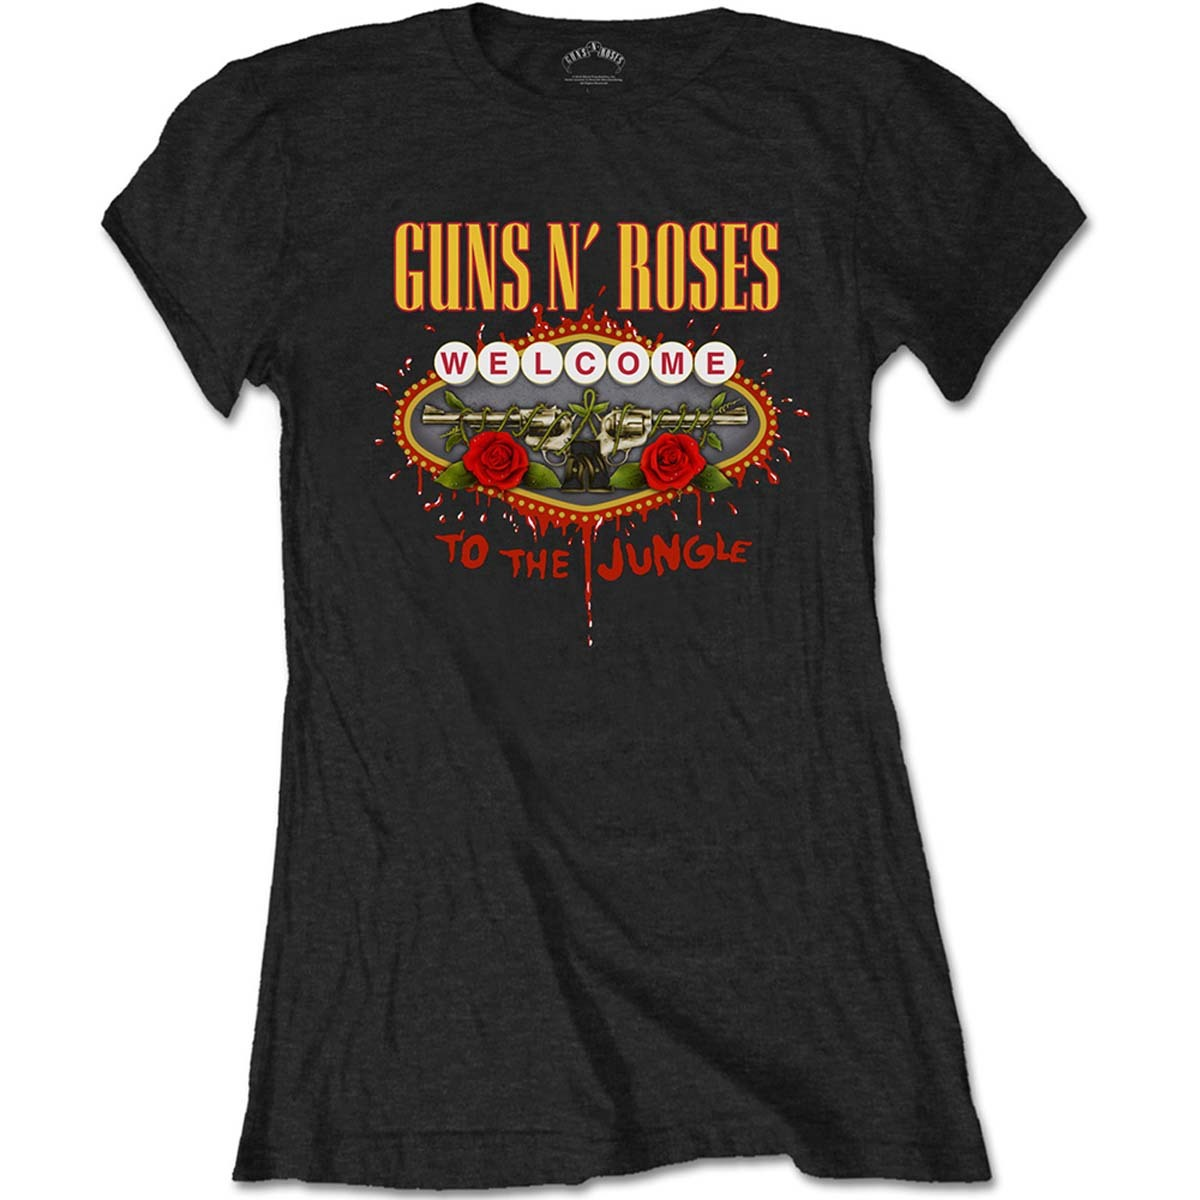 Primary image for Ladies Guns n' Roses Welcome to the Jungle Official Tee T-Shirt Womens Girls